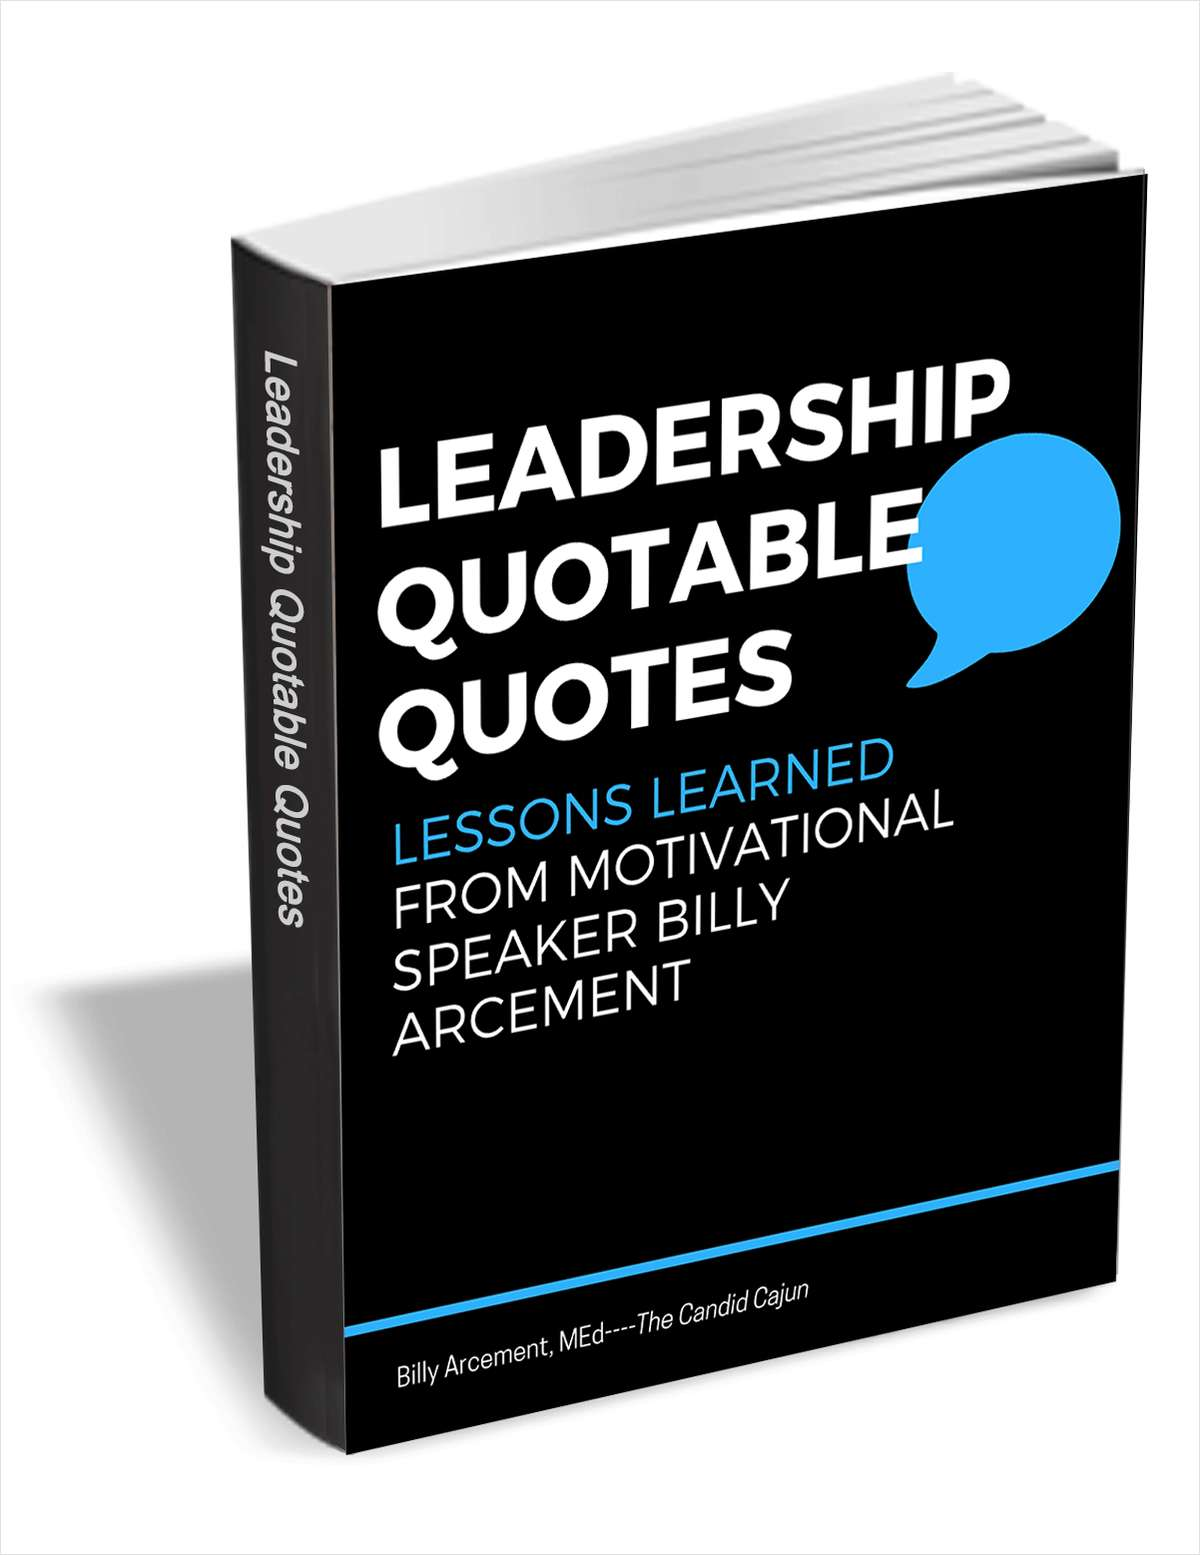 Leadership Quotable Quotes - Lessons Learned from Motivational Speaker Billy Arcement